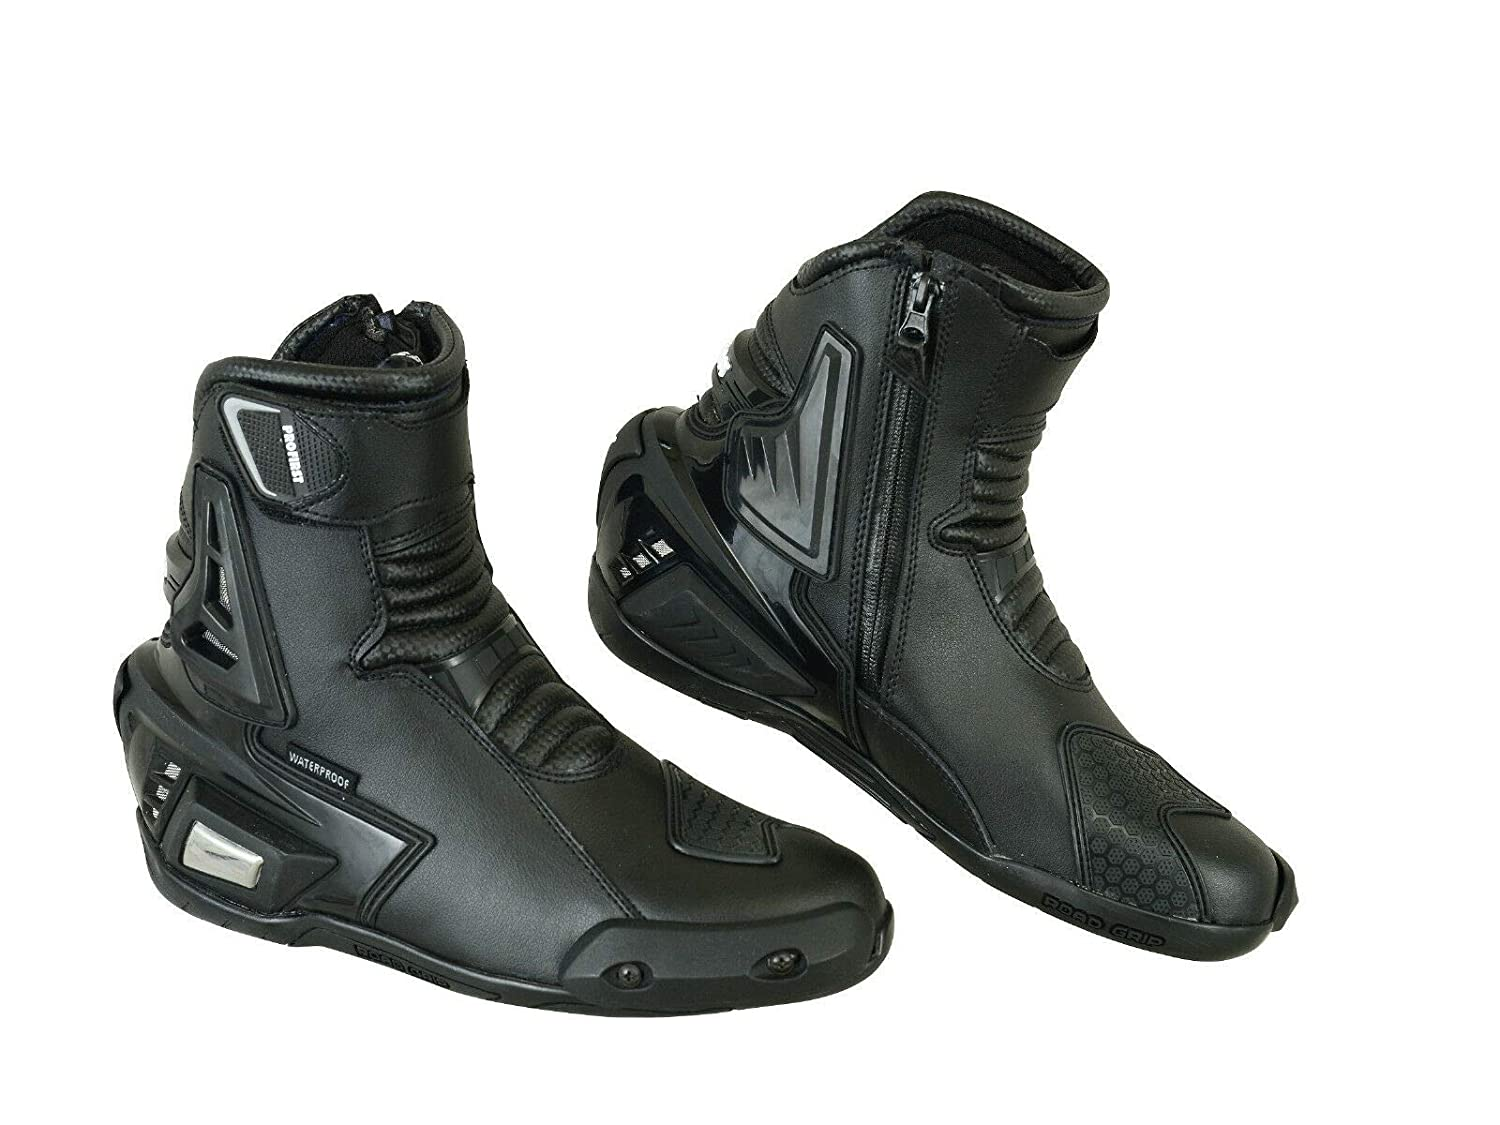 Pro First Genuine Leather Motorbike Armoured Boots Motorcycle Short Ankle Protection Boot Shoes Anti Slip Racing Sports EU 39 Full Black UK 5